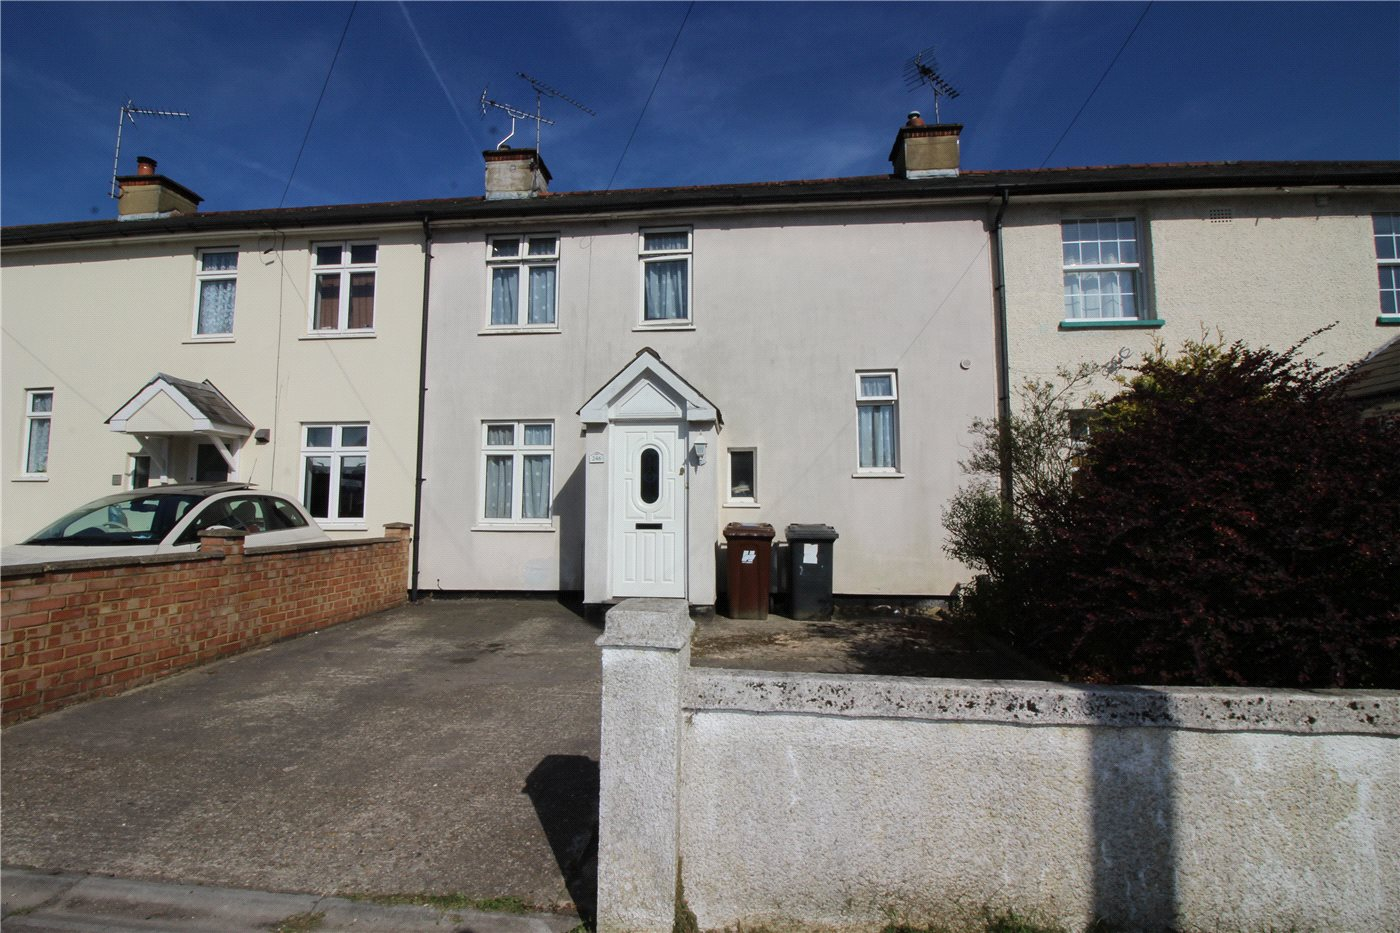 3 Bedrooms Terraced House for sale in Shenley Road, Borehamwood, Hertfordshire, WD6